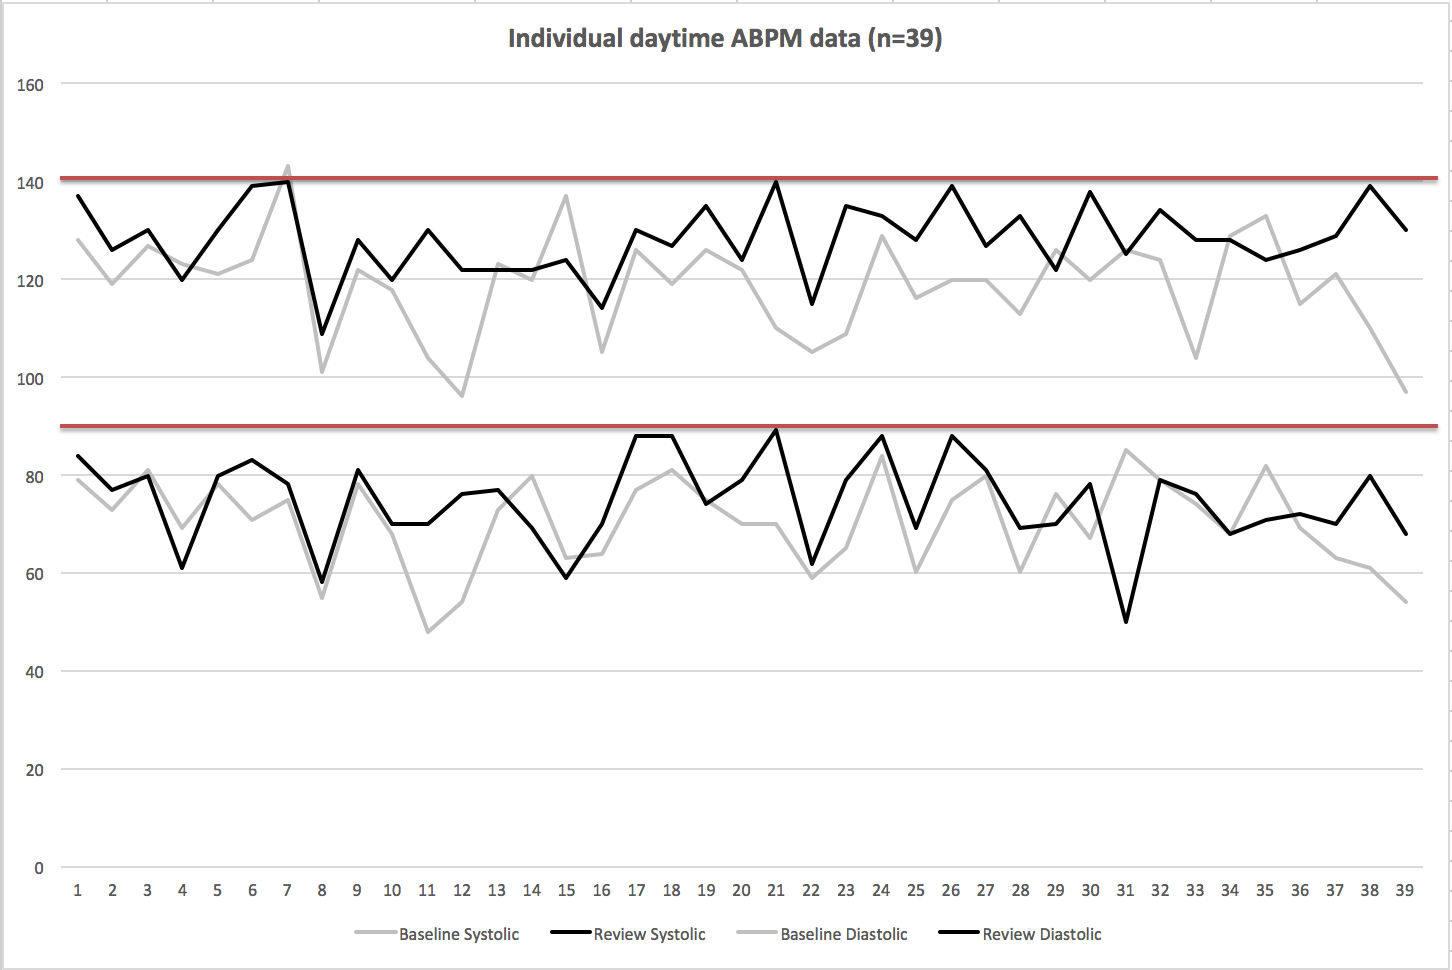 Jamil - Figure 2. Comparison of individual daytime ABPM (ambulatory blood pressure monitoring) at baseline (grey) and at 3 months (black), with normotensive limits shown in red (140/90 mmHg), n=39